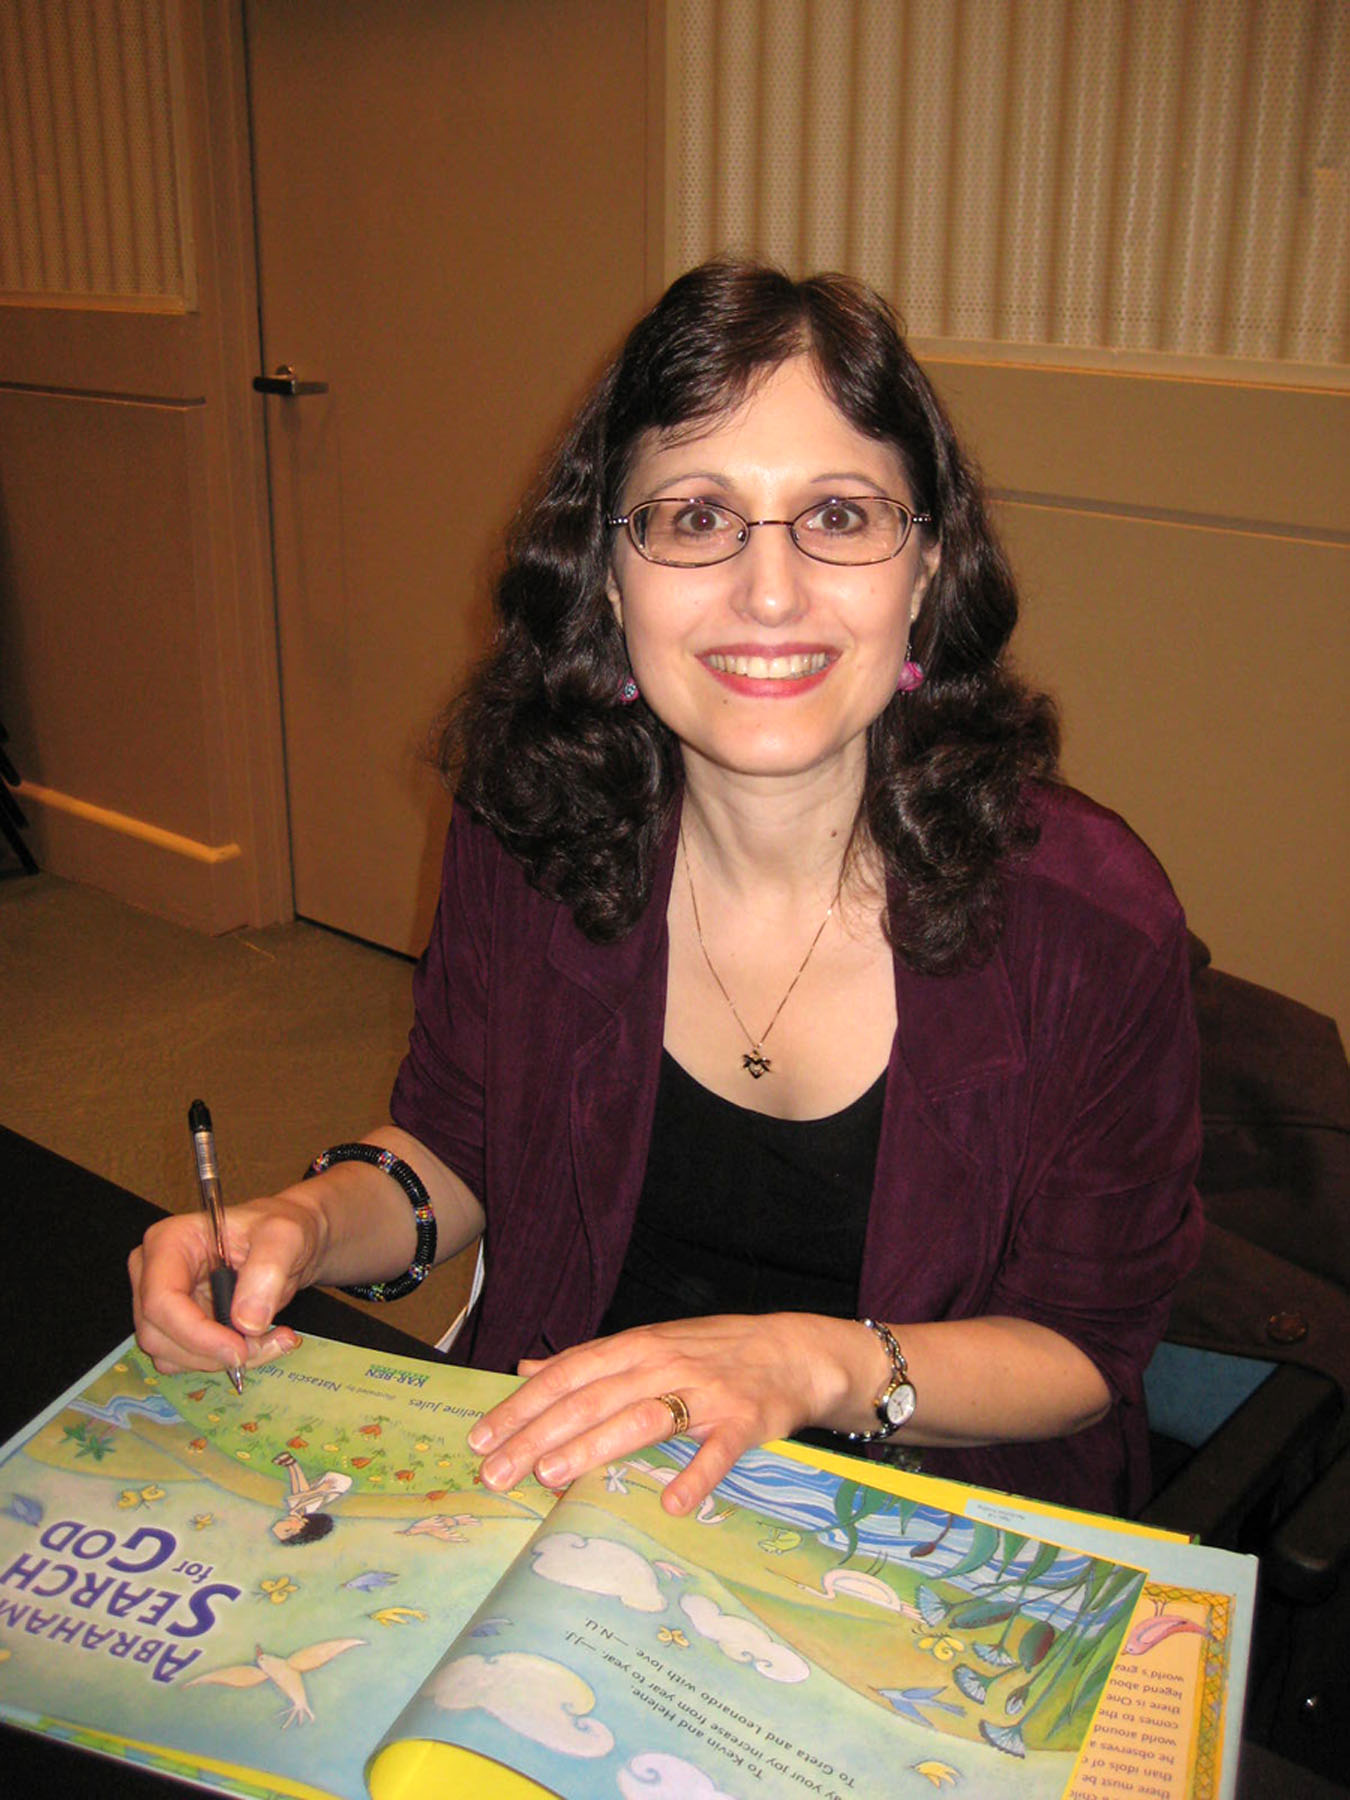 Jacqueline Jules at book signing